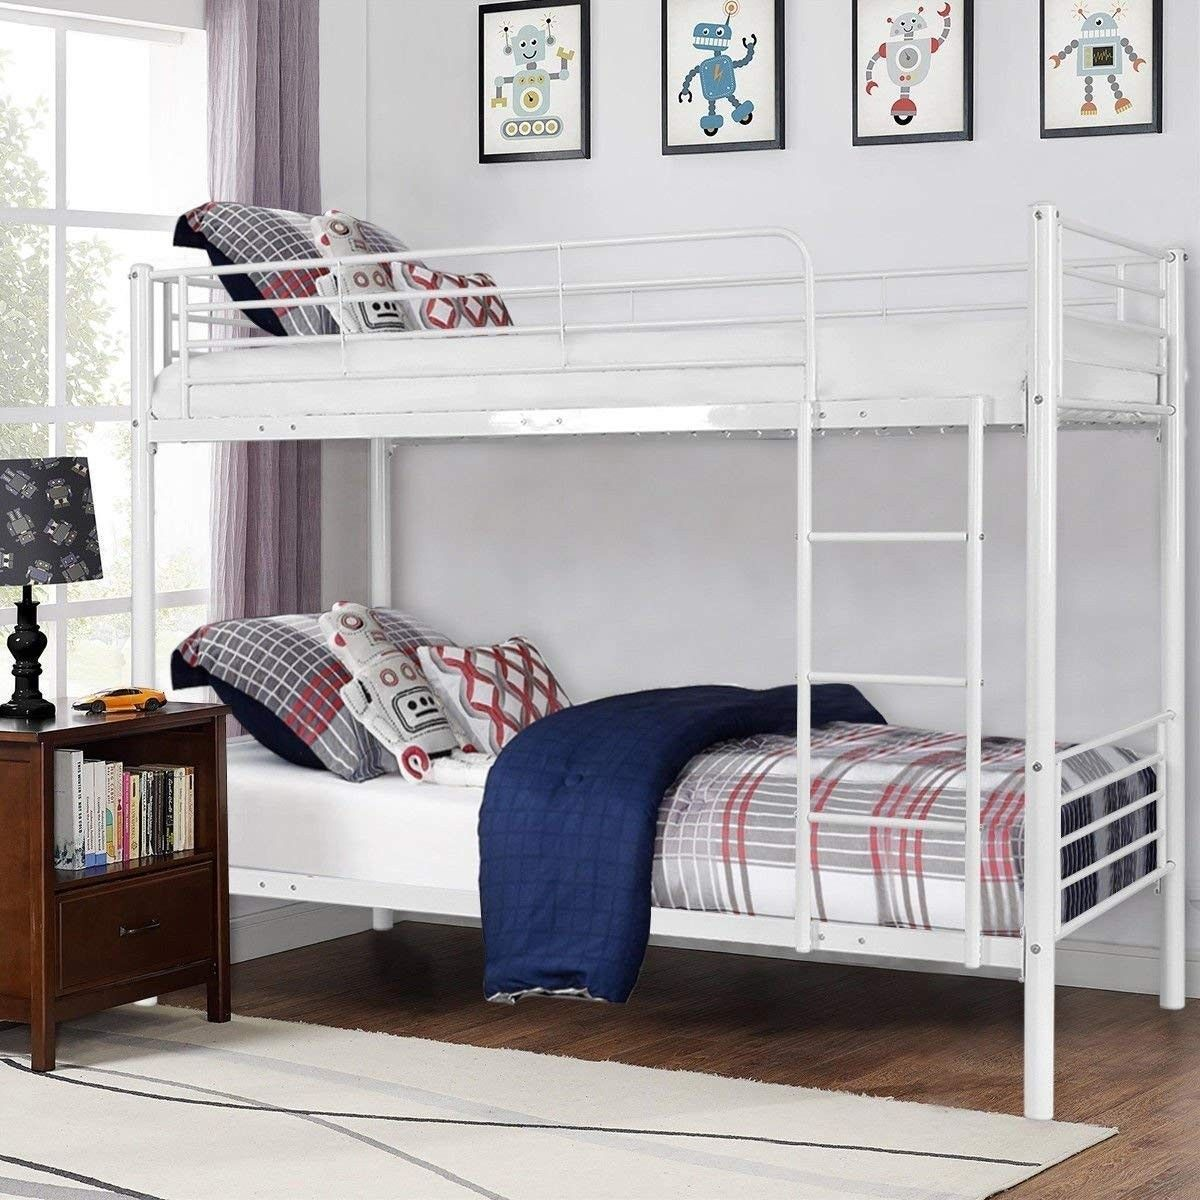 Metal Twin Over Twin Bunk Beds With Ladder In 2020 Bunk Bed Designs White Bedroom Furniture Twin Bunk Beds